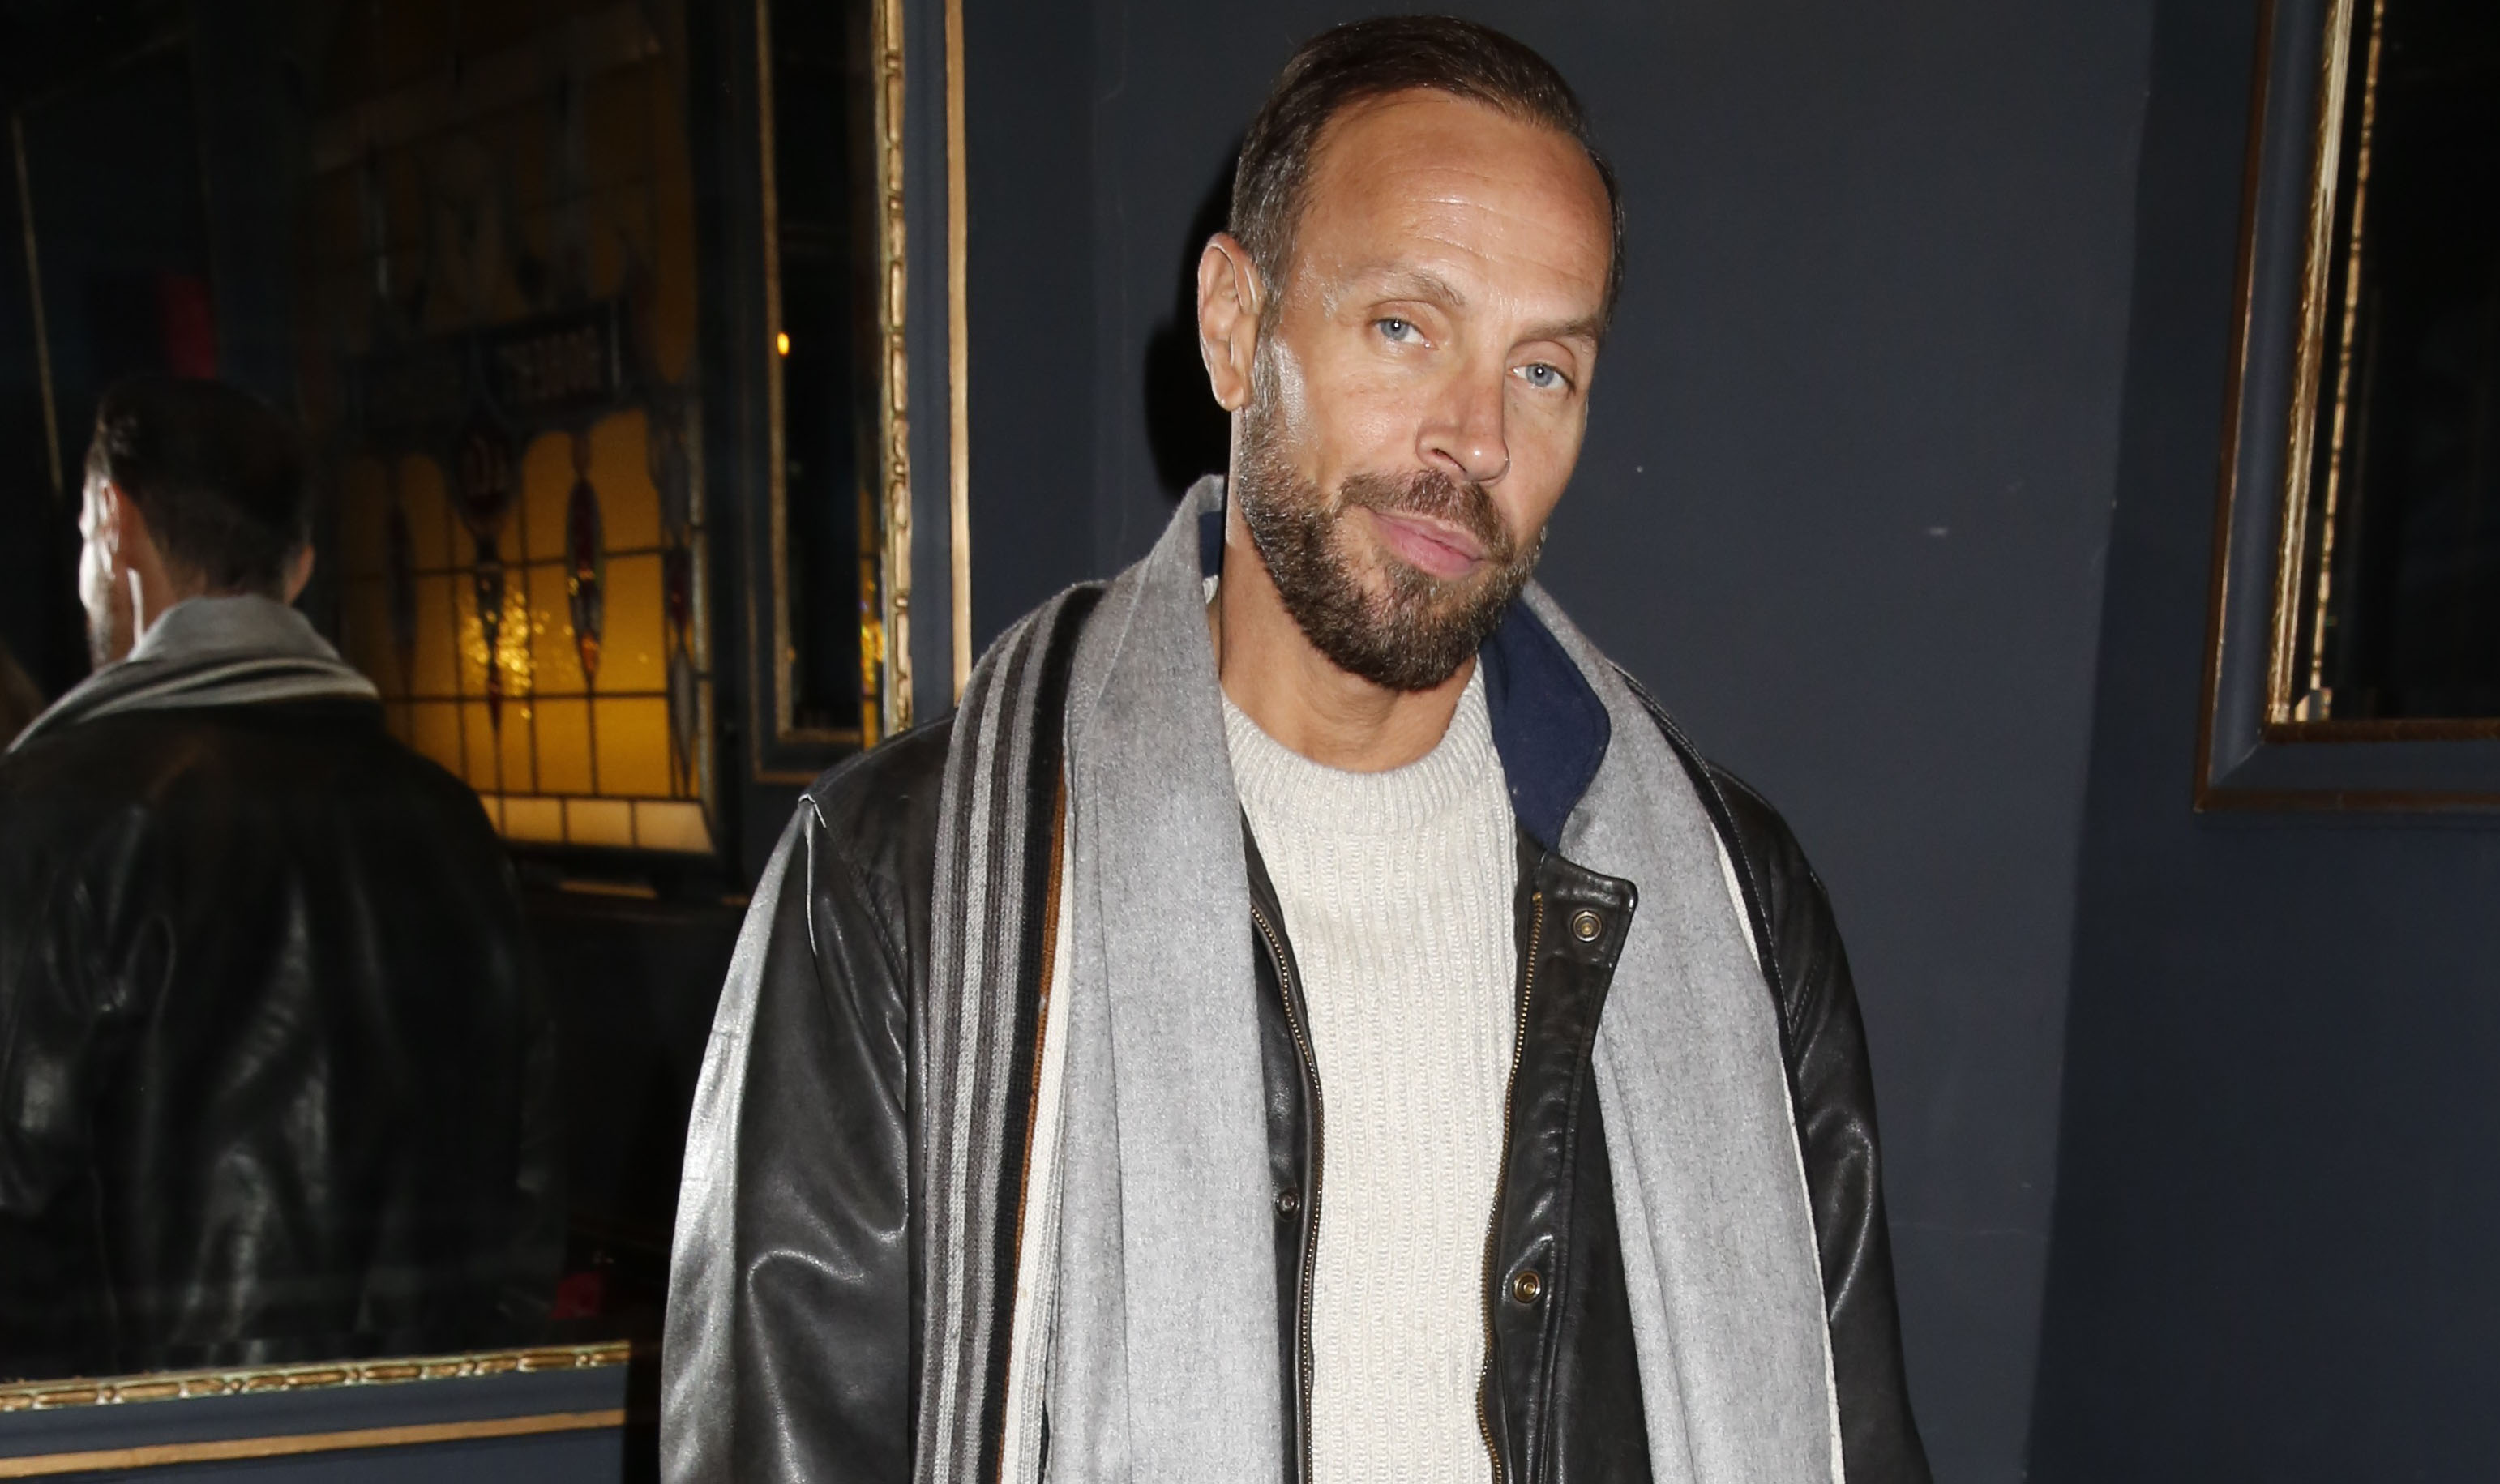 Ex Dancing On Ice contestant defends Jason Gardiner amid 'bullying' claims